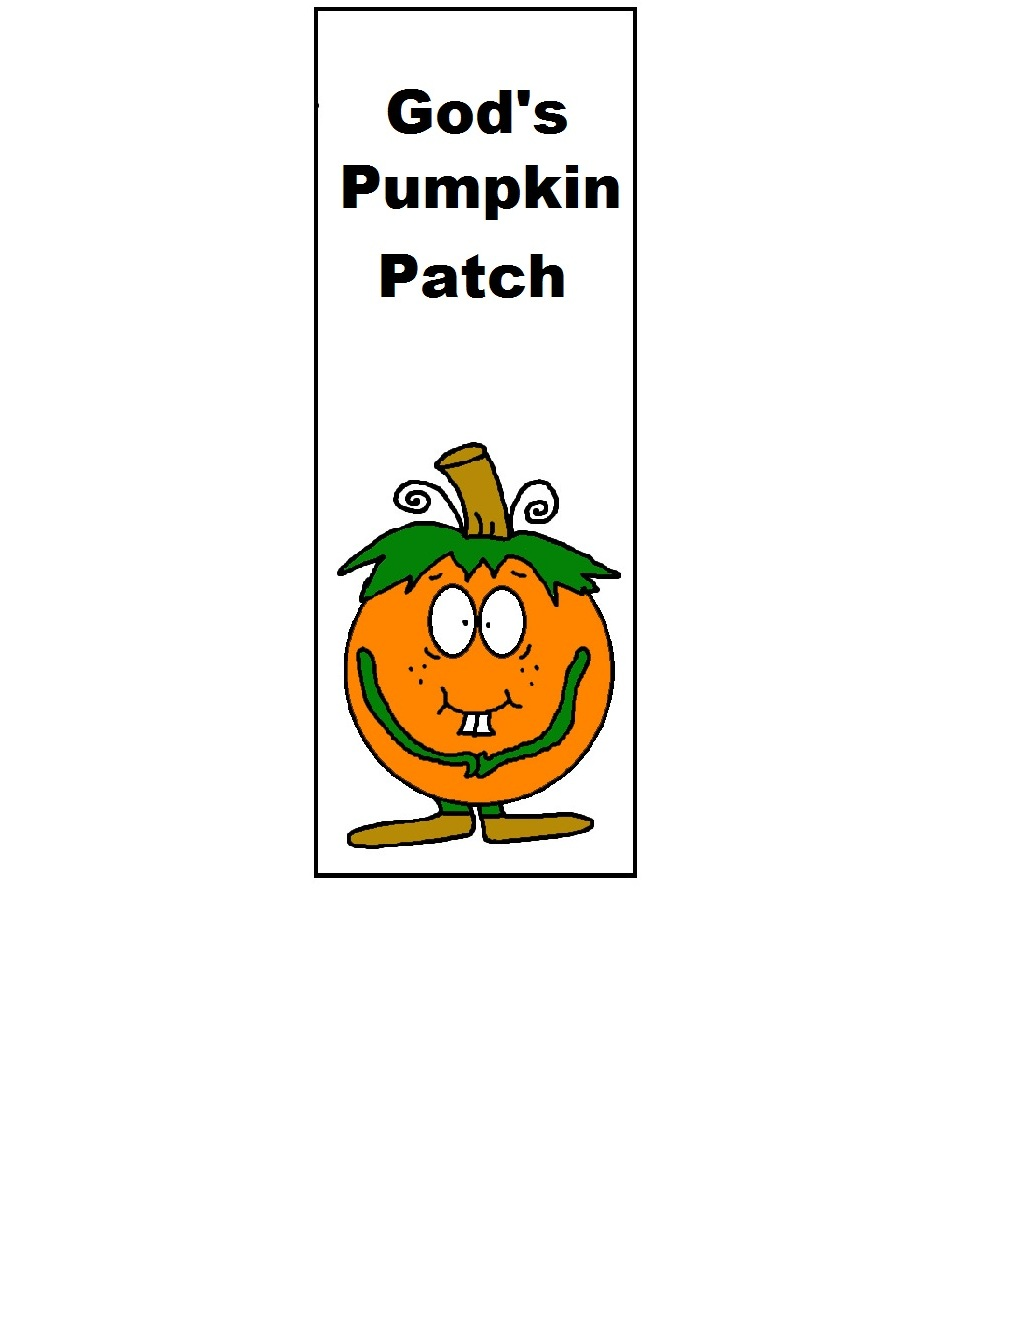 God's Pumpkin Patch Bookmark Printable Cutout Template By Church Hosue Collection- Gods Pumpkin Patch- Free Printable Sunday School Bookmarks For Kids